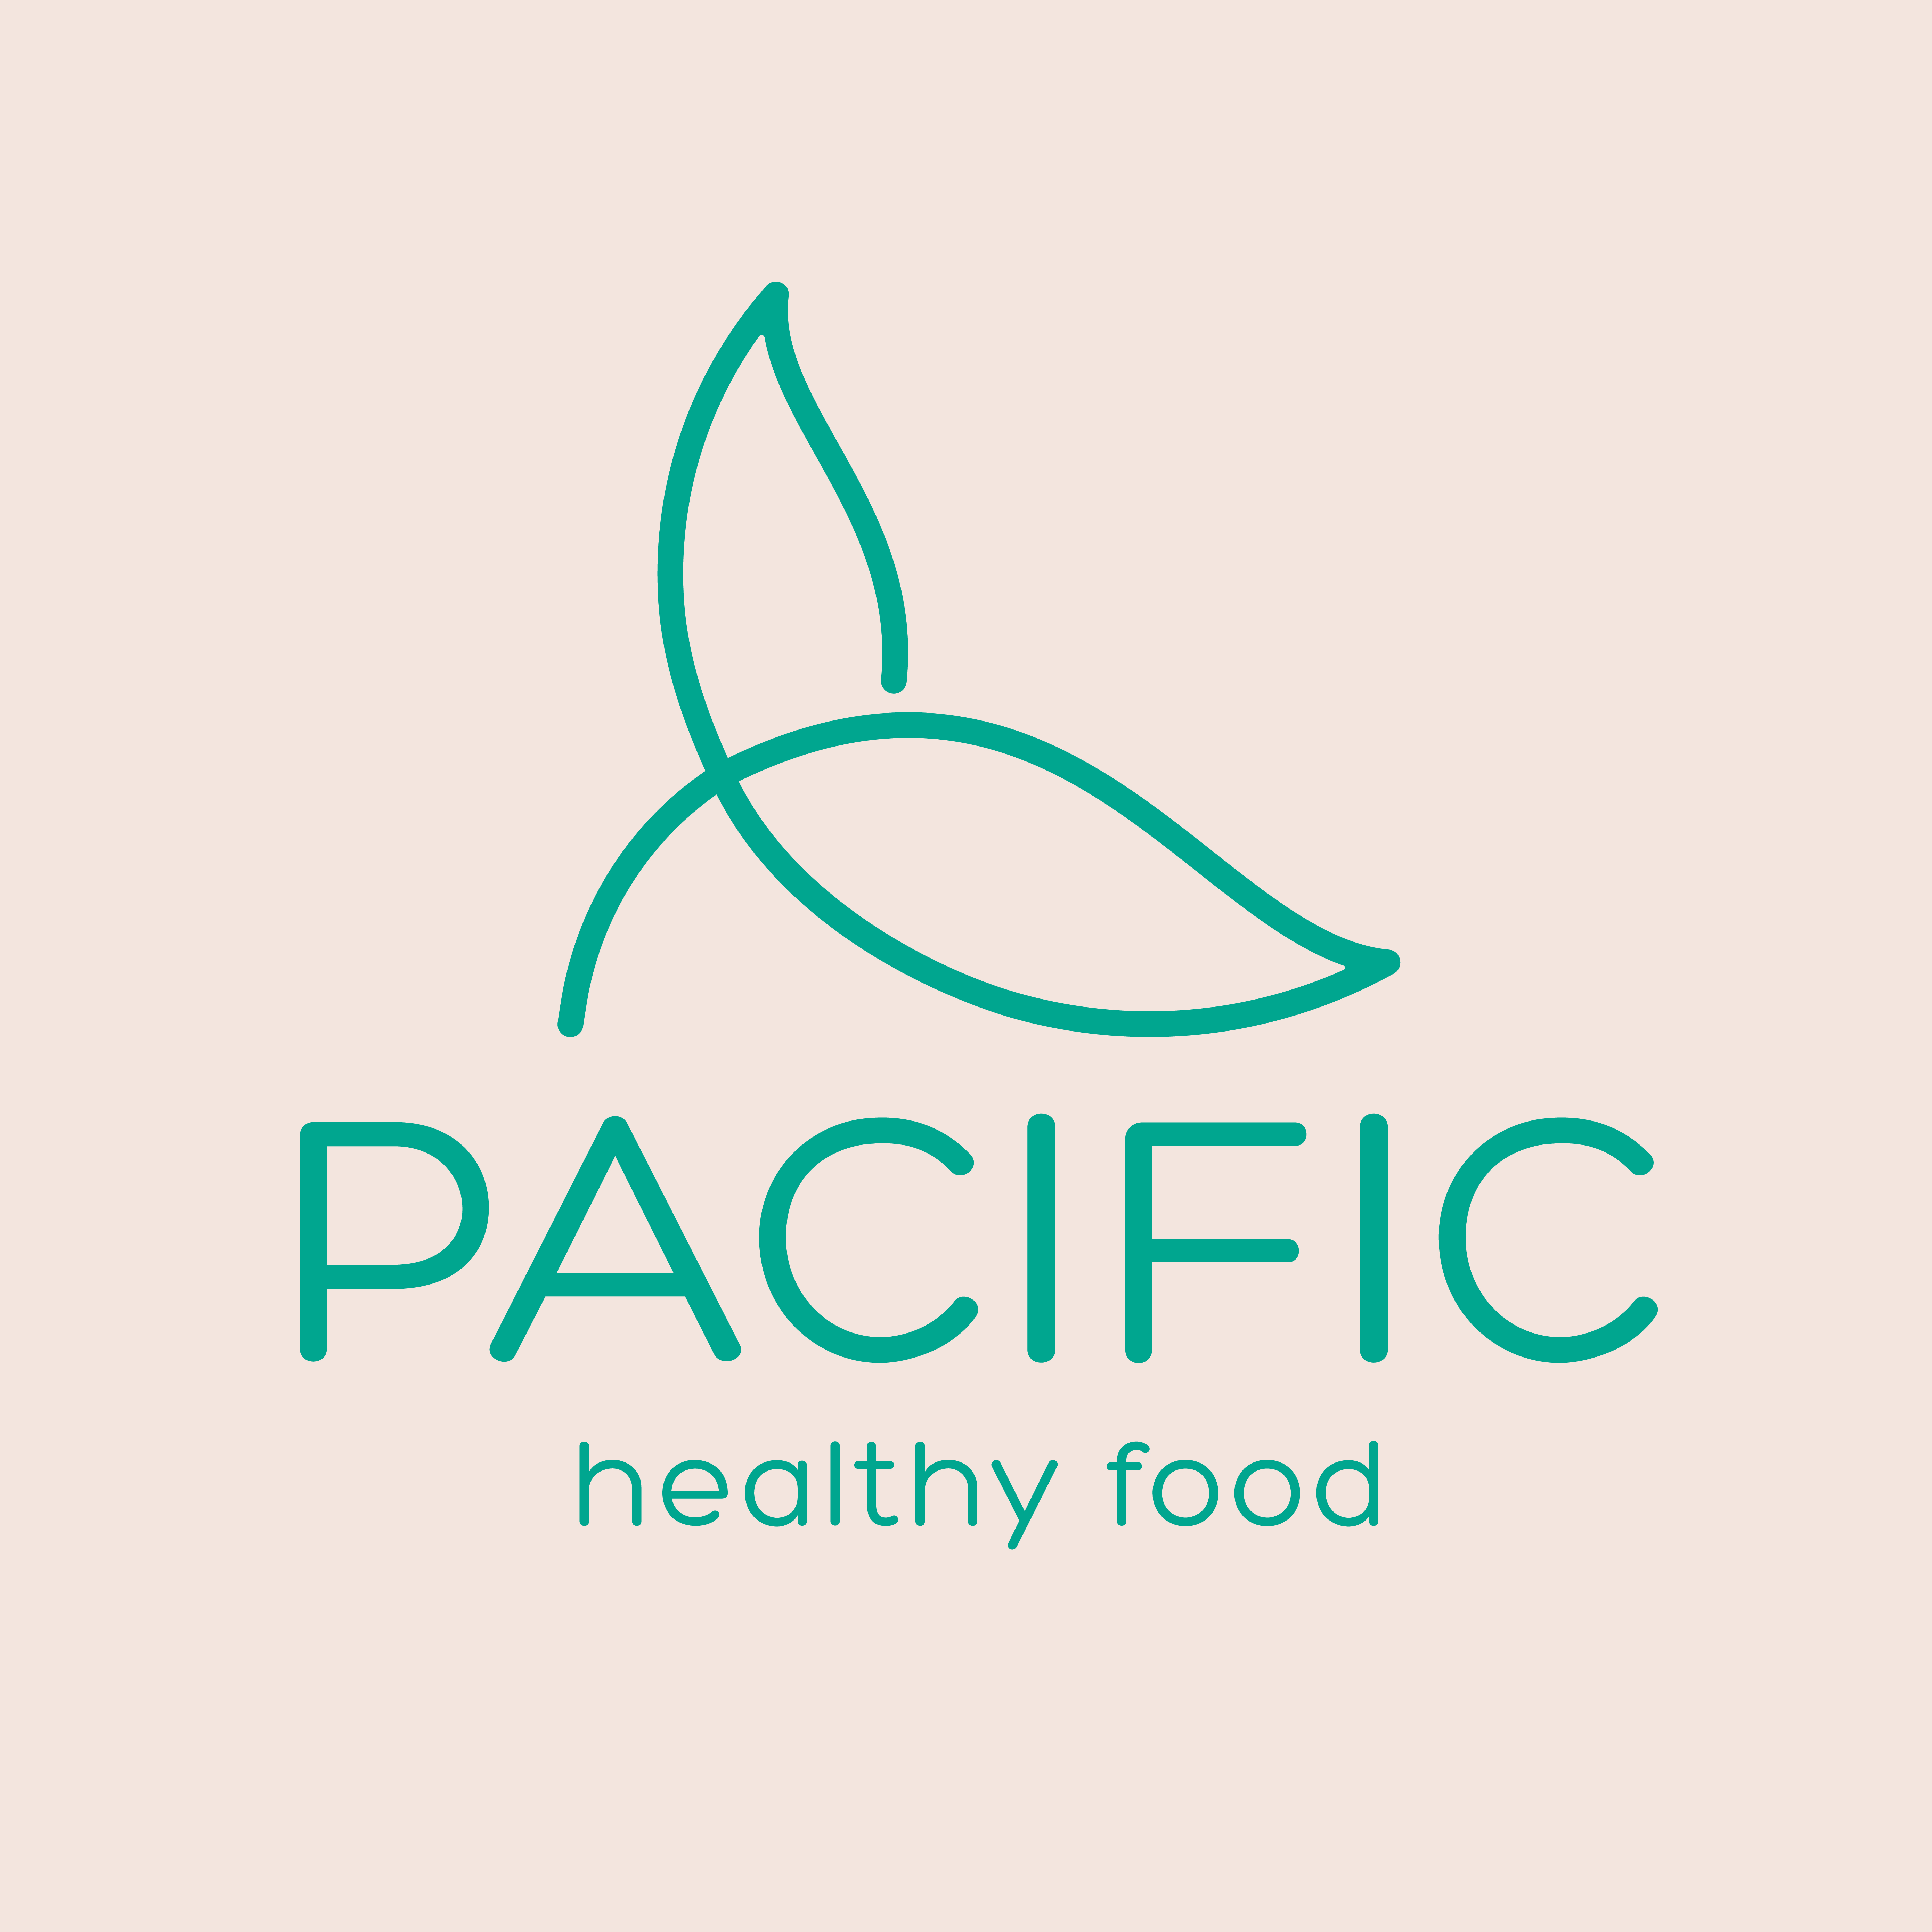 Pacific Healthy Food